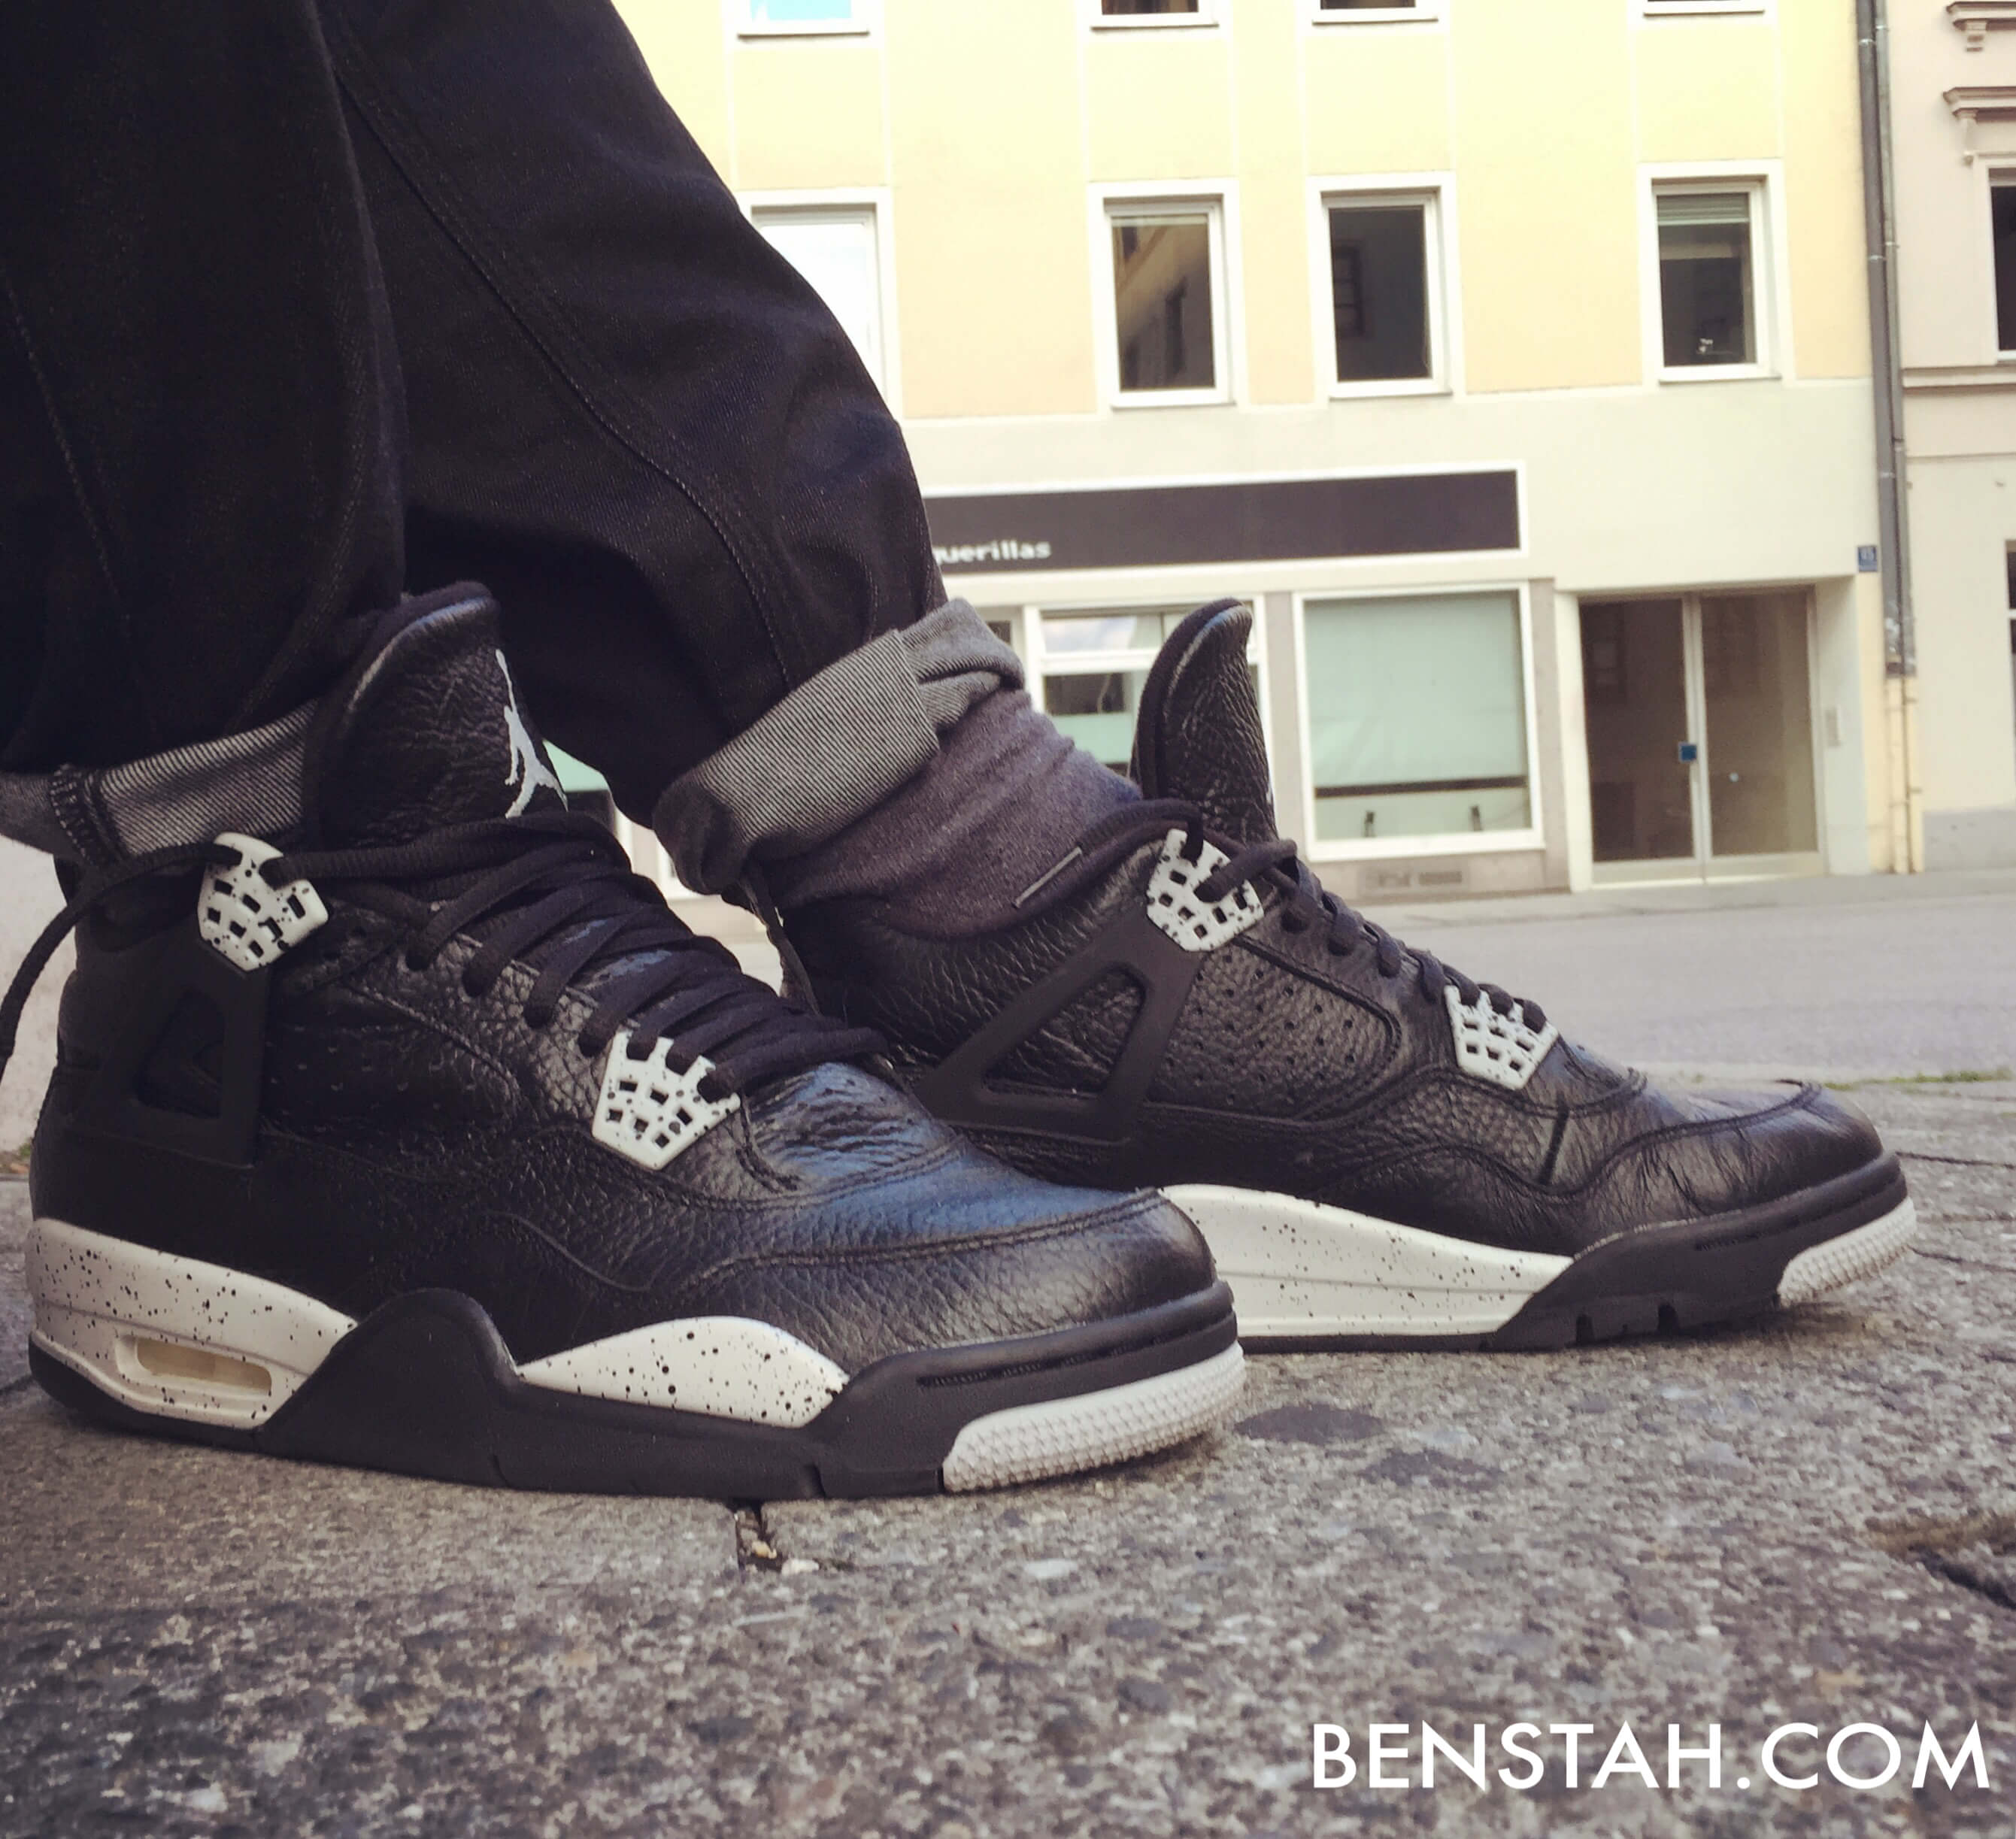 Air-Jordan-4-Oreo-Side-View-Benstah-Onfeet